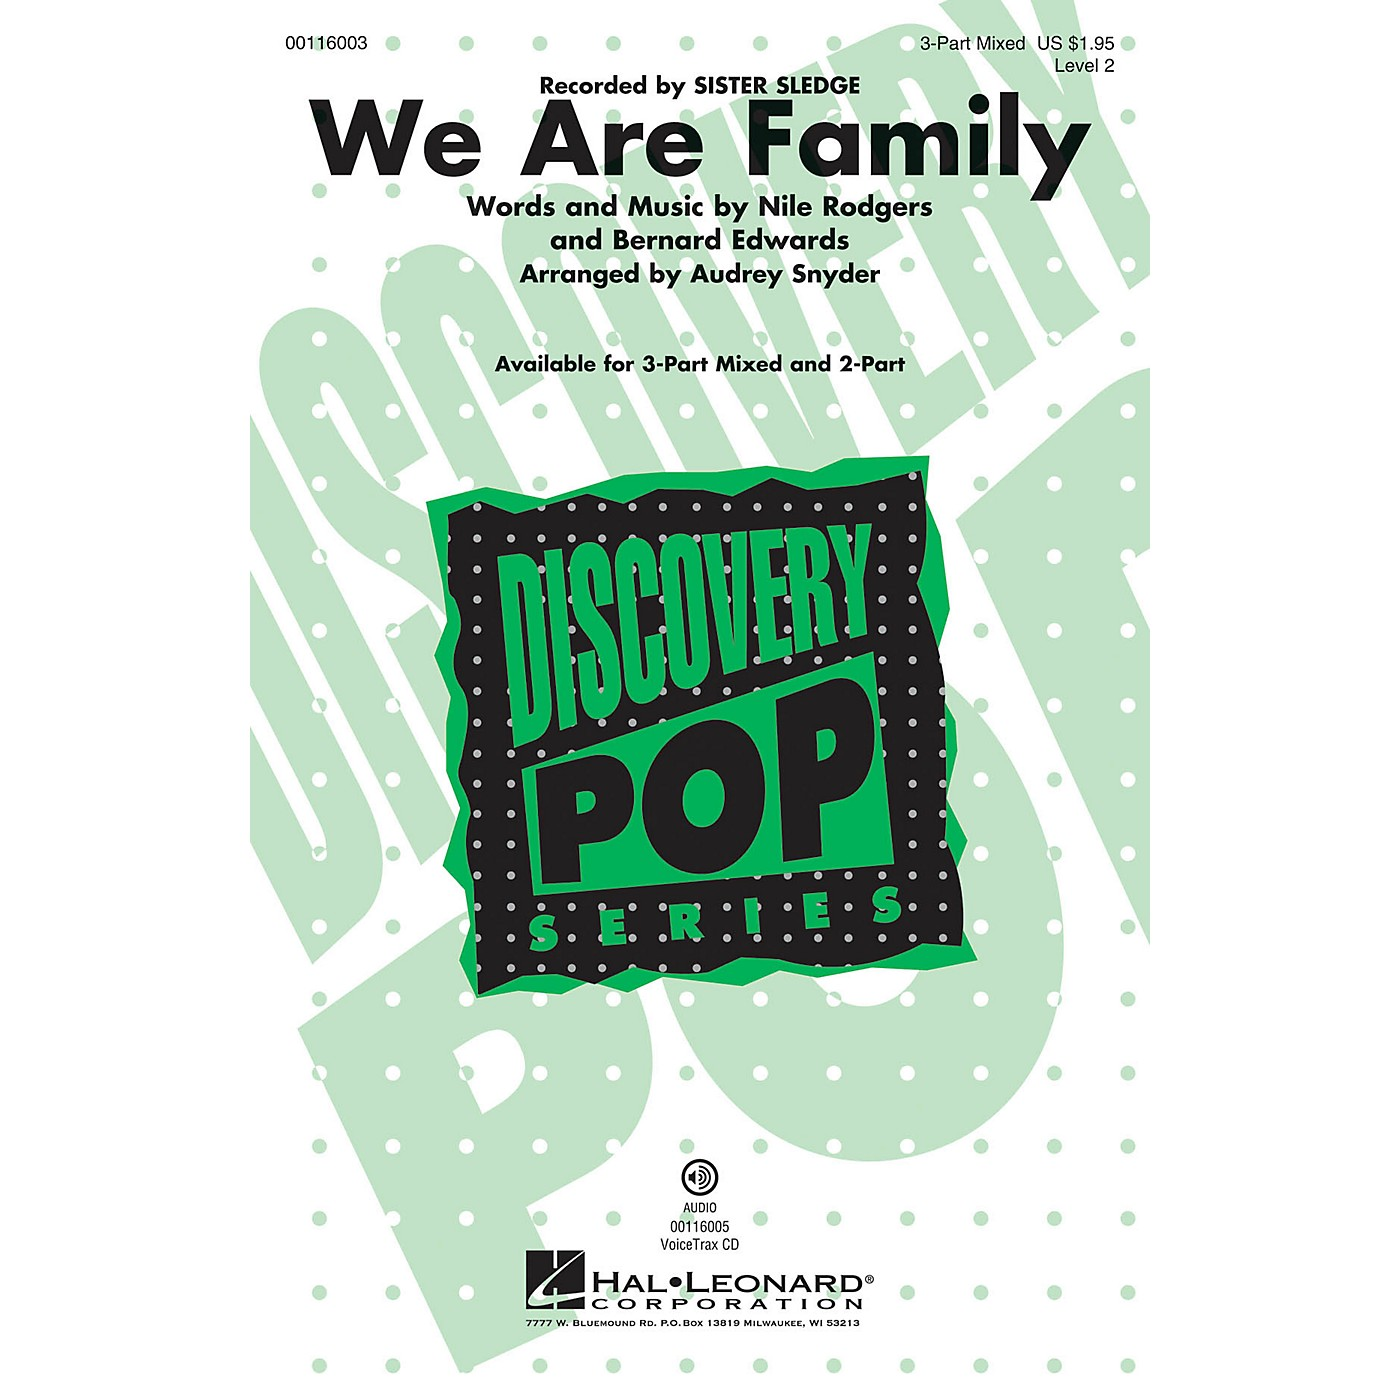 Hal Leonard We Are Family (Discovery Level 2 2-Part) 2-Part by Sister Sledge Arranged by Audrey Snyder thumbnail